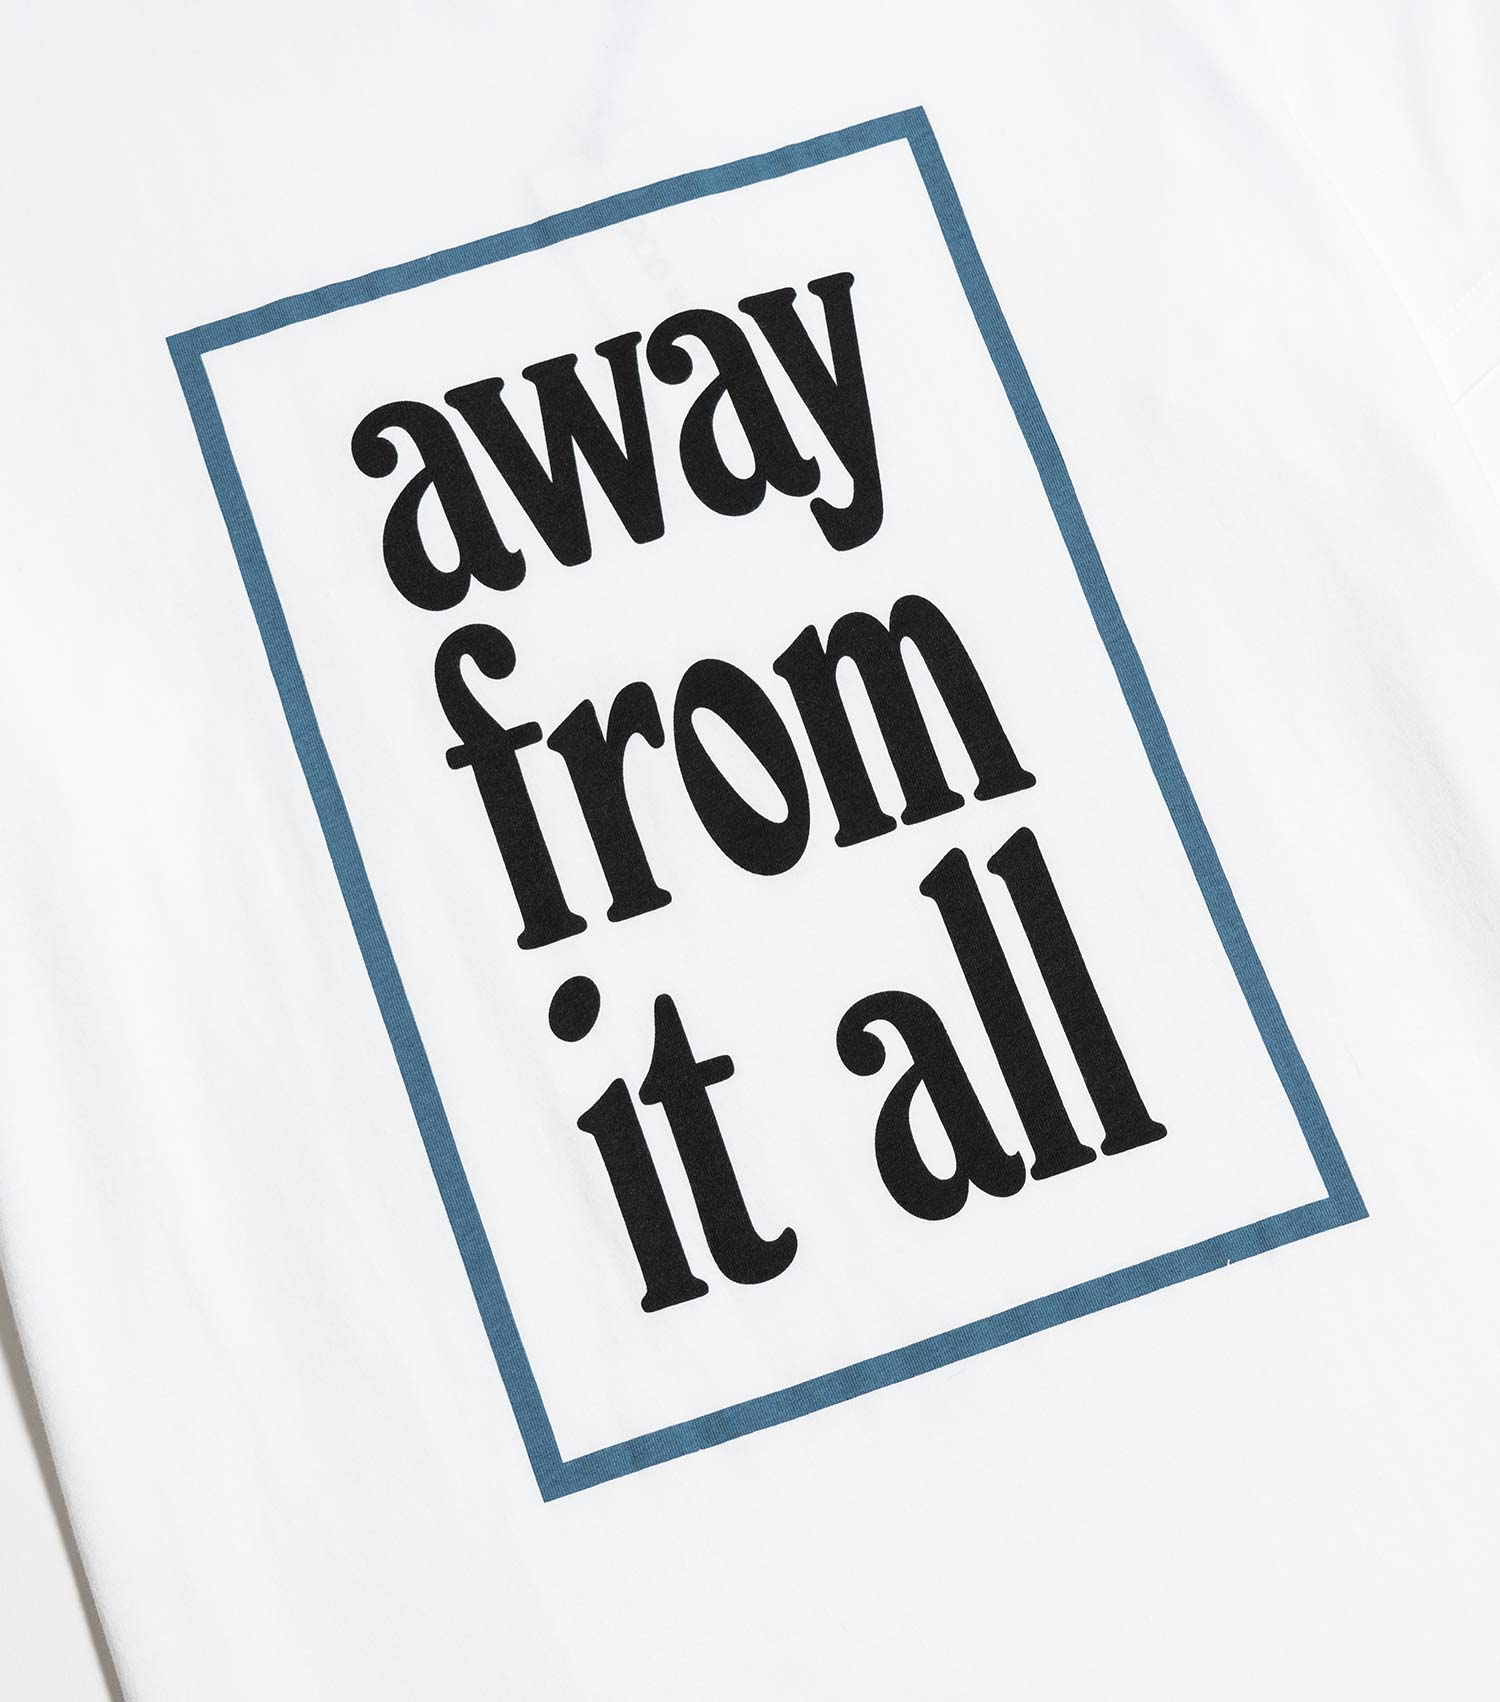 Wood Wood Away From It All T-Shirt - White